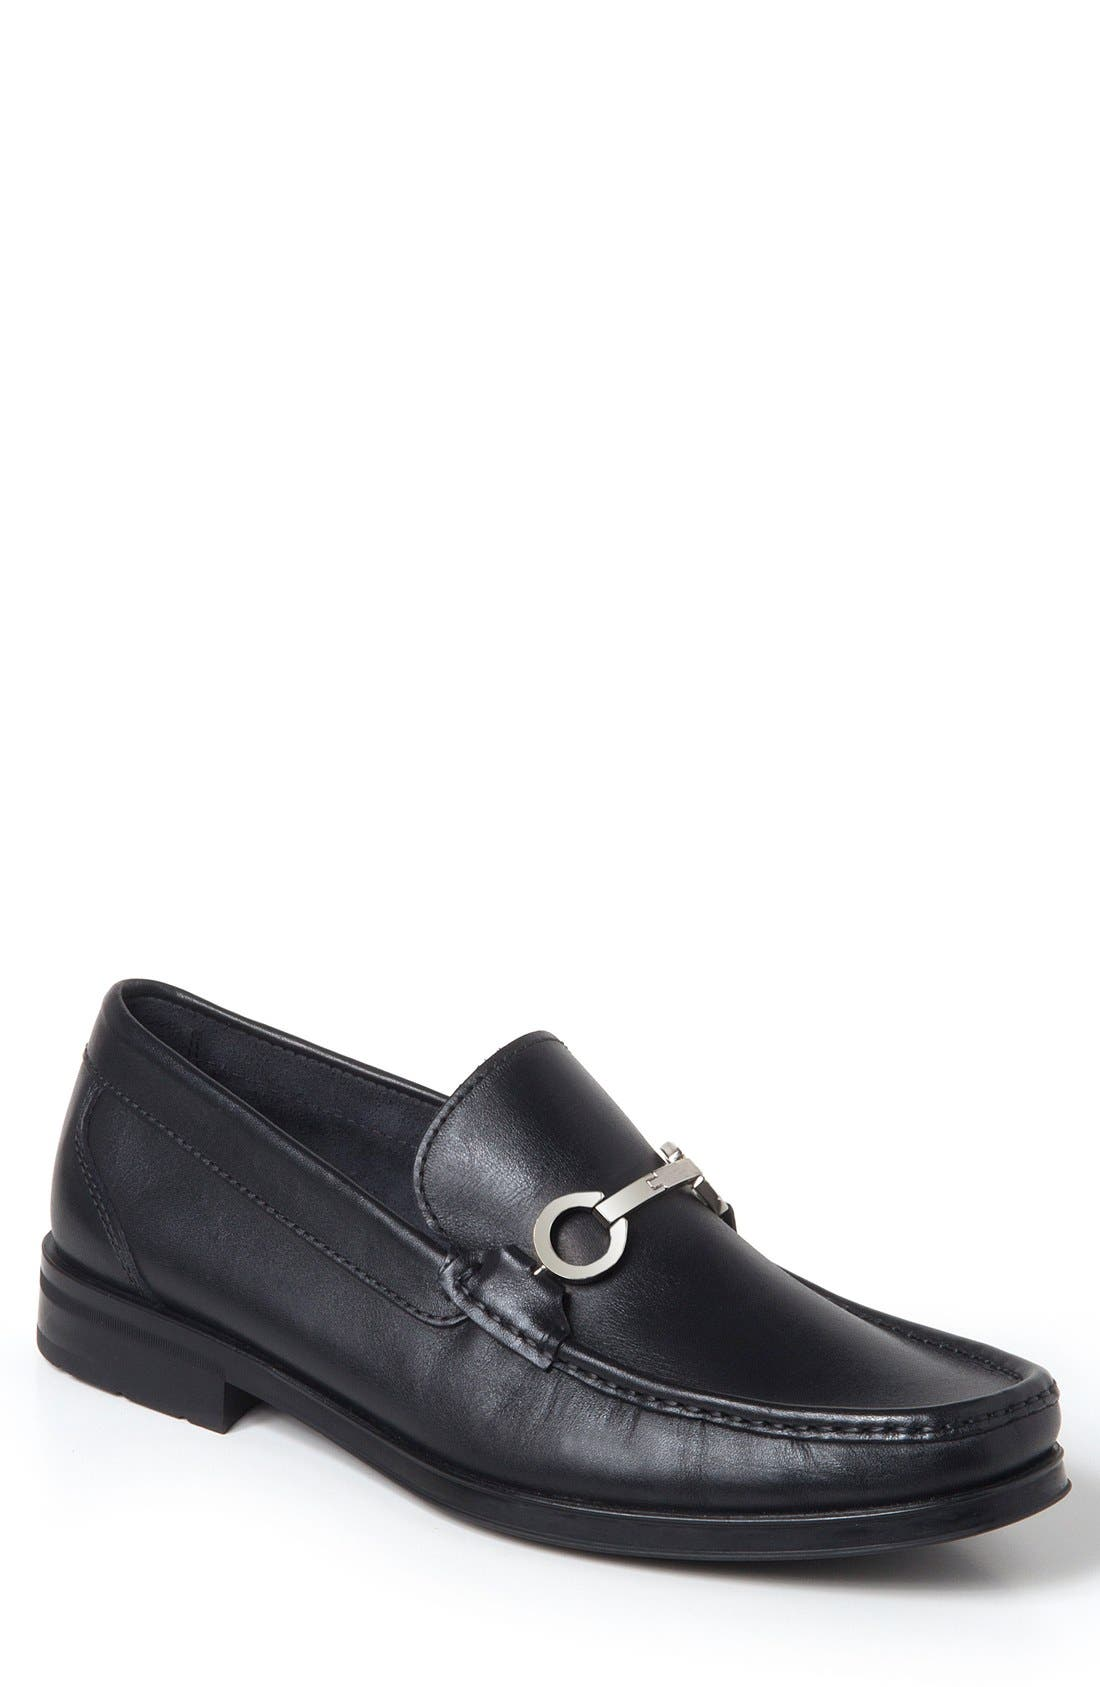 Genoa Bit Loafer,                             Main thumbnail 1, color,                             BLACK LEATHER